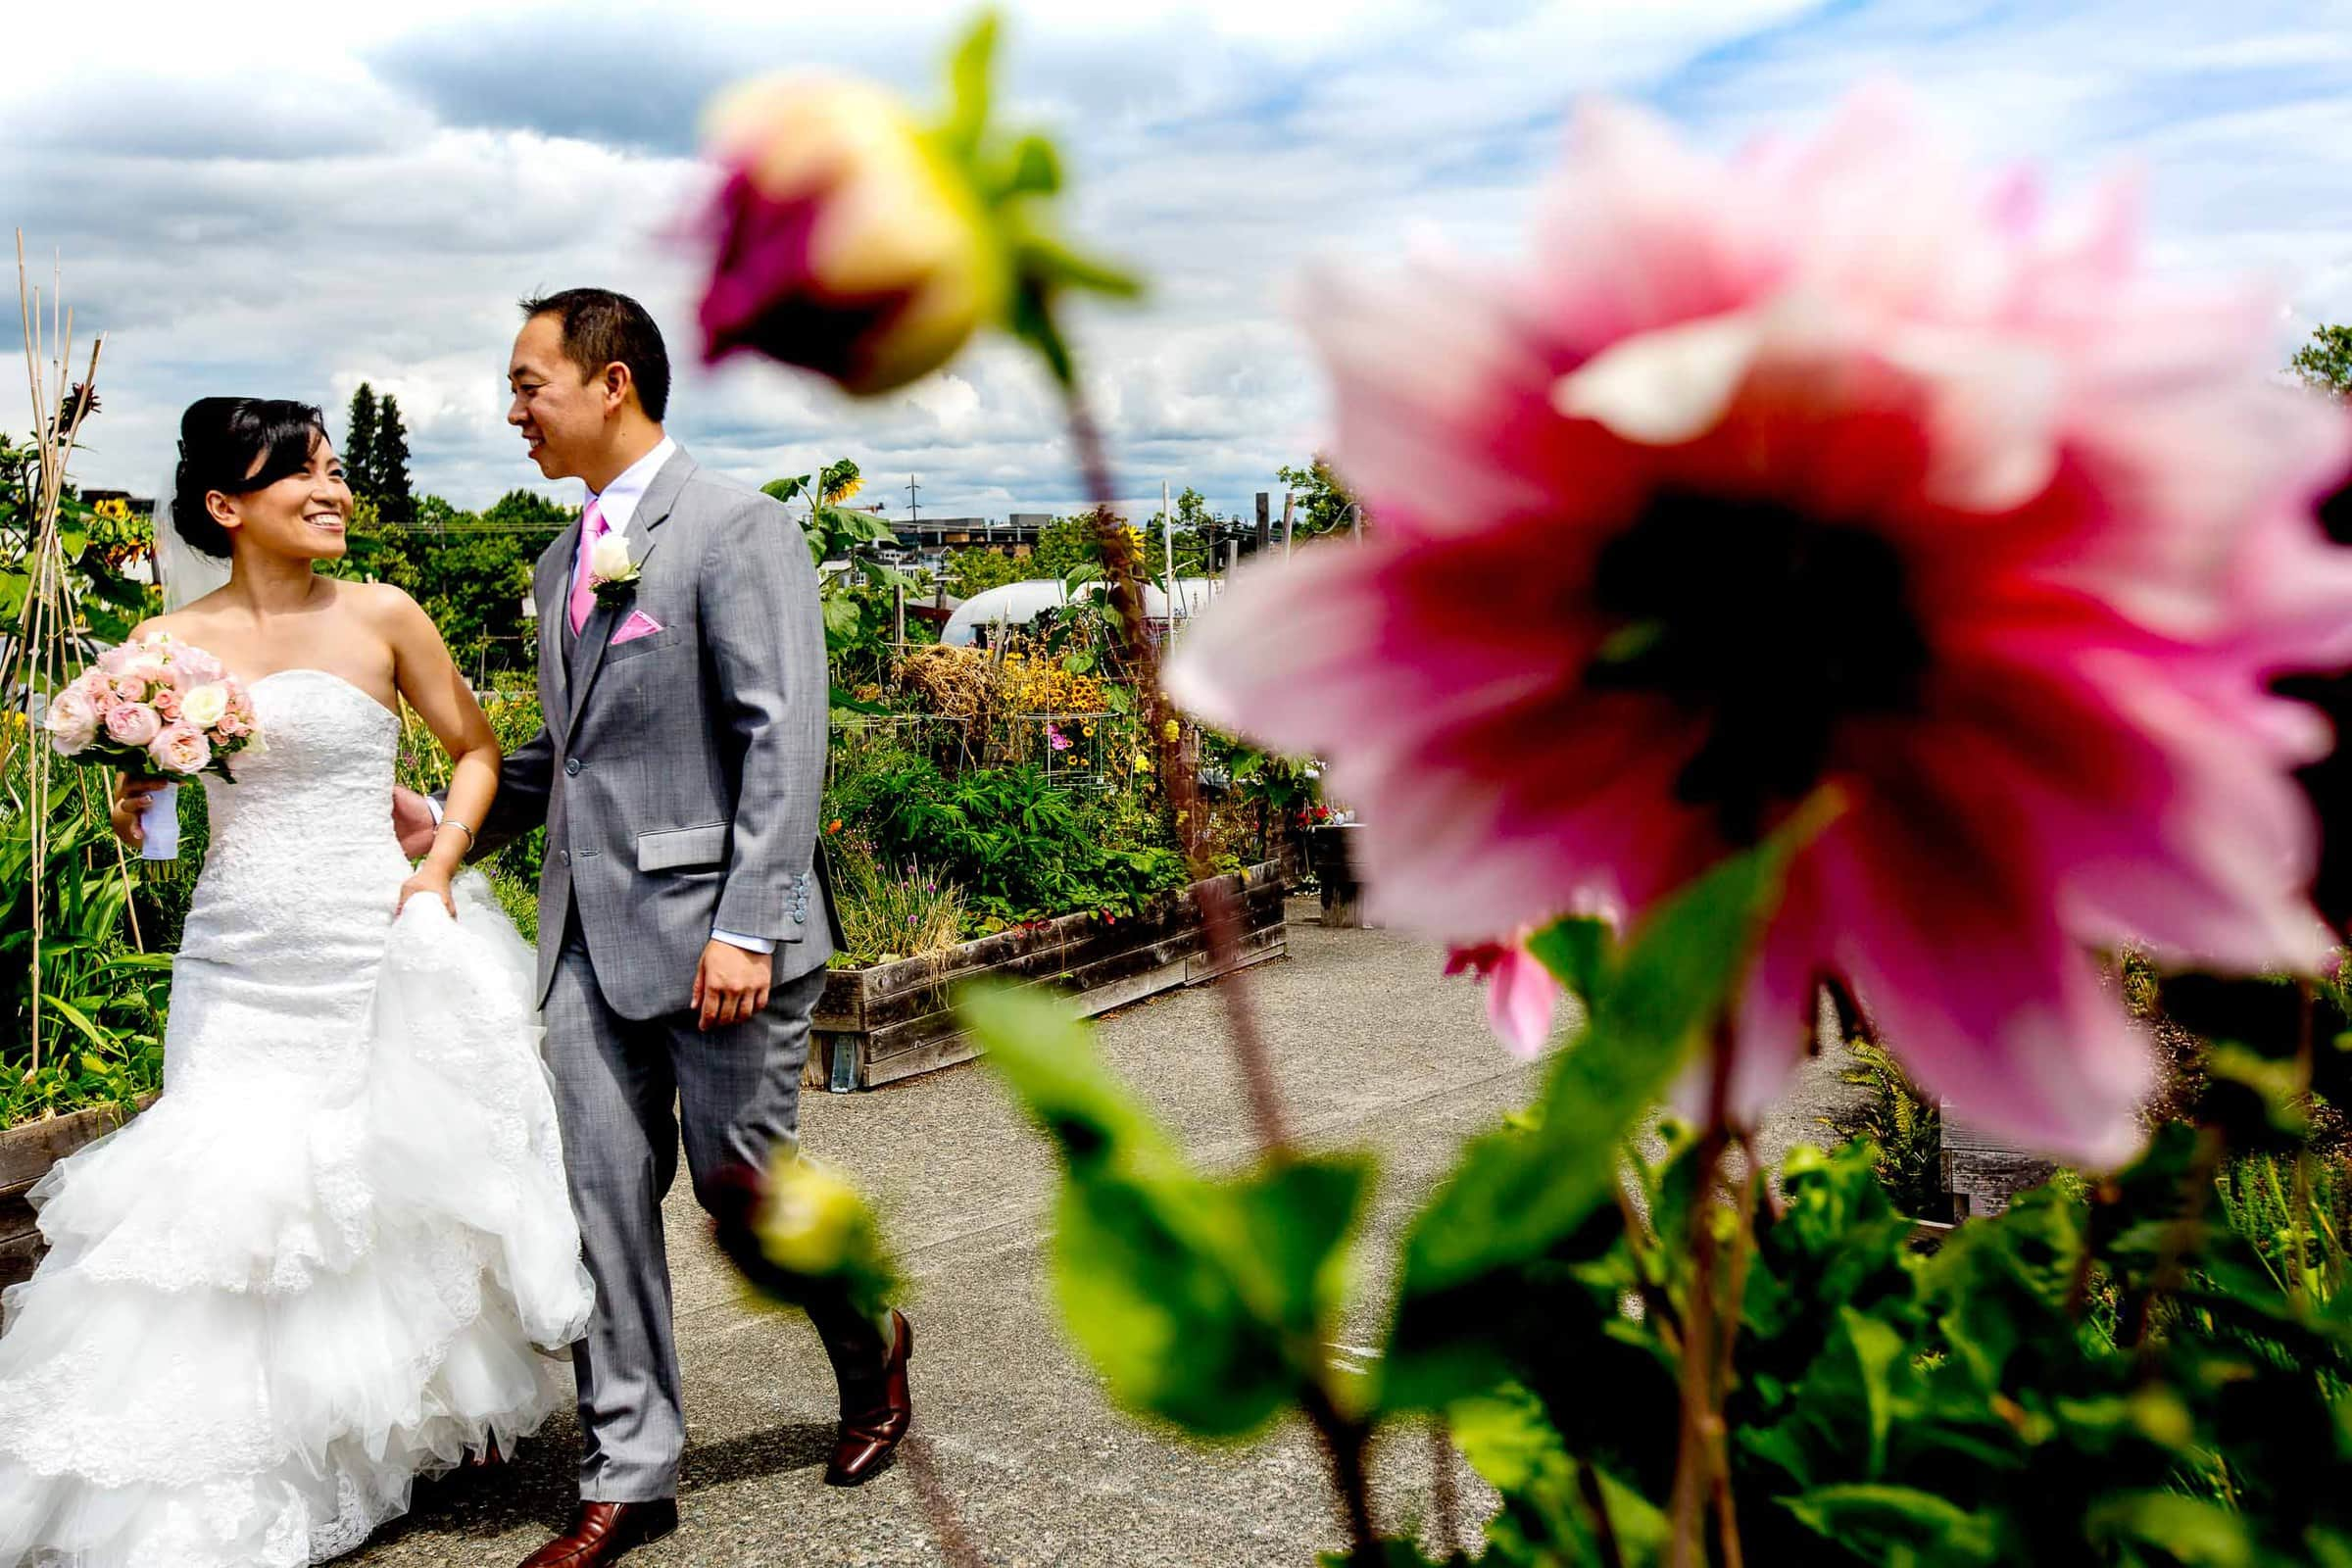 Bride and groom walking together before a Saltys wedding in Seattle, Washington. Award winning wedding photographers by Jos and Tree.